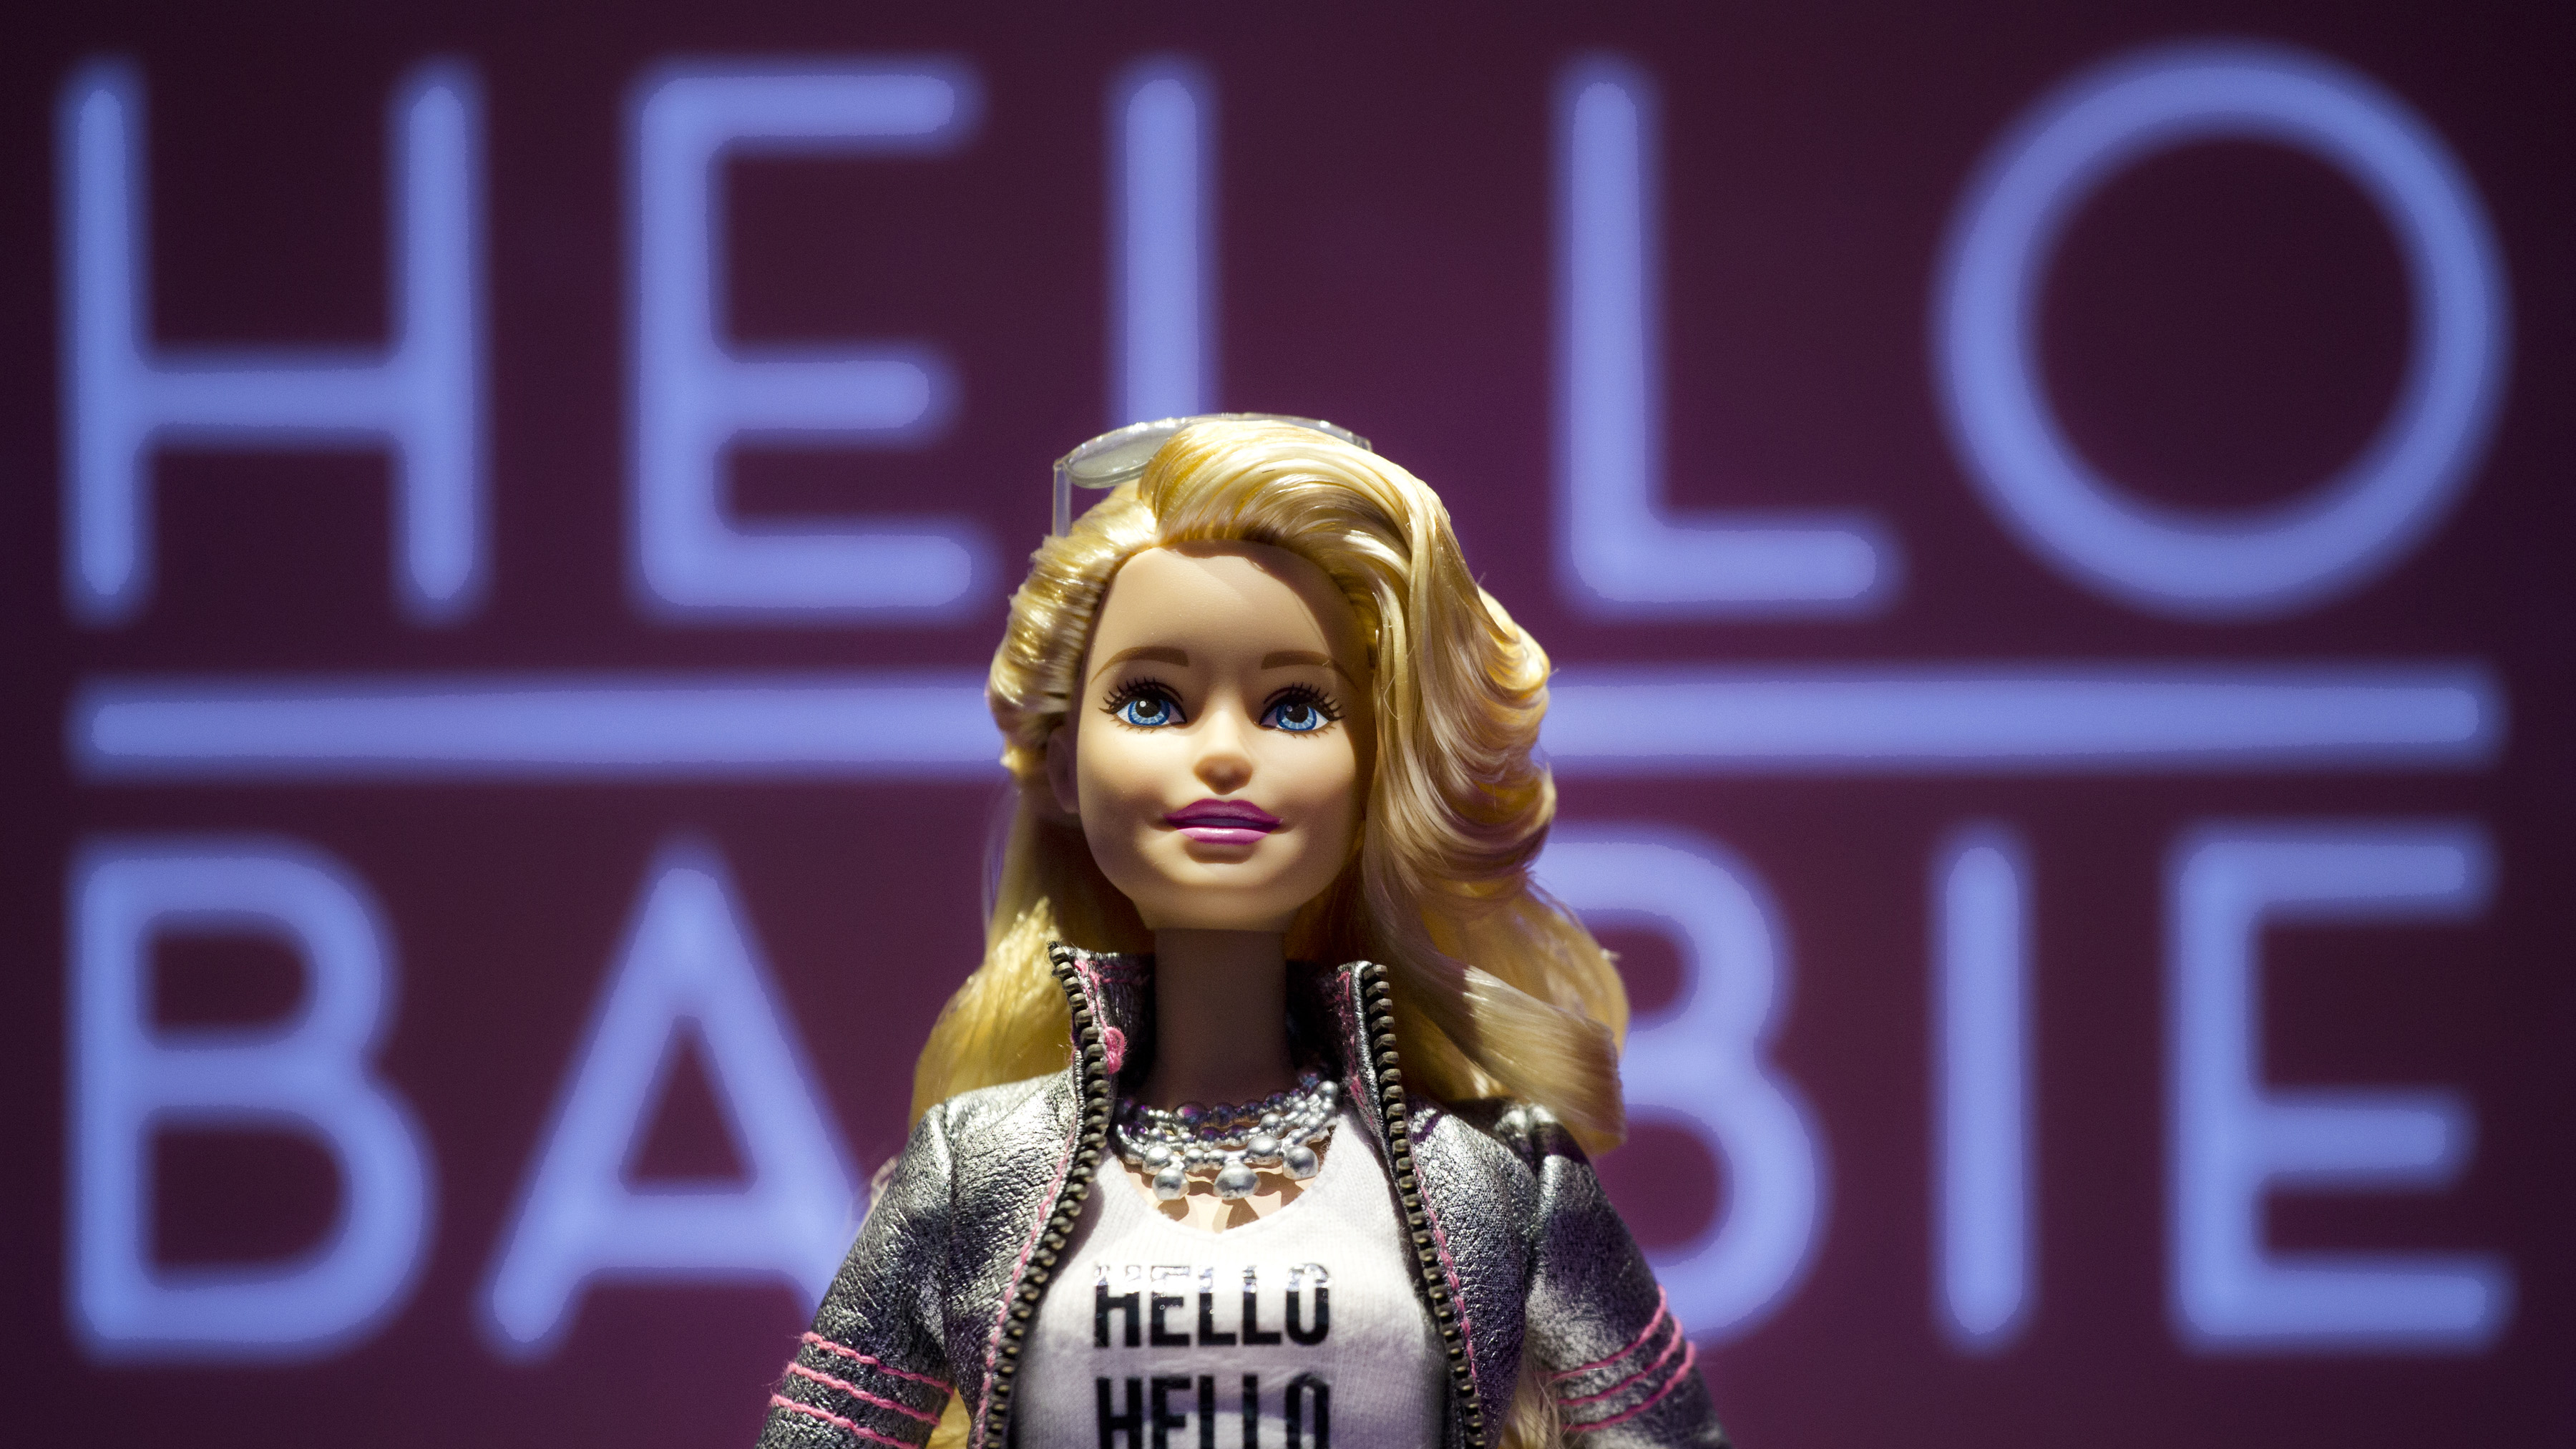 FILE - In this Feb. 14, 2015 file photo, Hello Barbie is displayed at the Mattel showroom during the North American International Toy Fair in New York. The toy records and stores conversations between kids and their dolls to improve speech-recognition technology and help its makers create more relevant automated responses for kids. Parents concerned about privacy can review and delete those conversations by visiting a website. (AP Photo/Mark Lennihan, File)